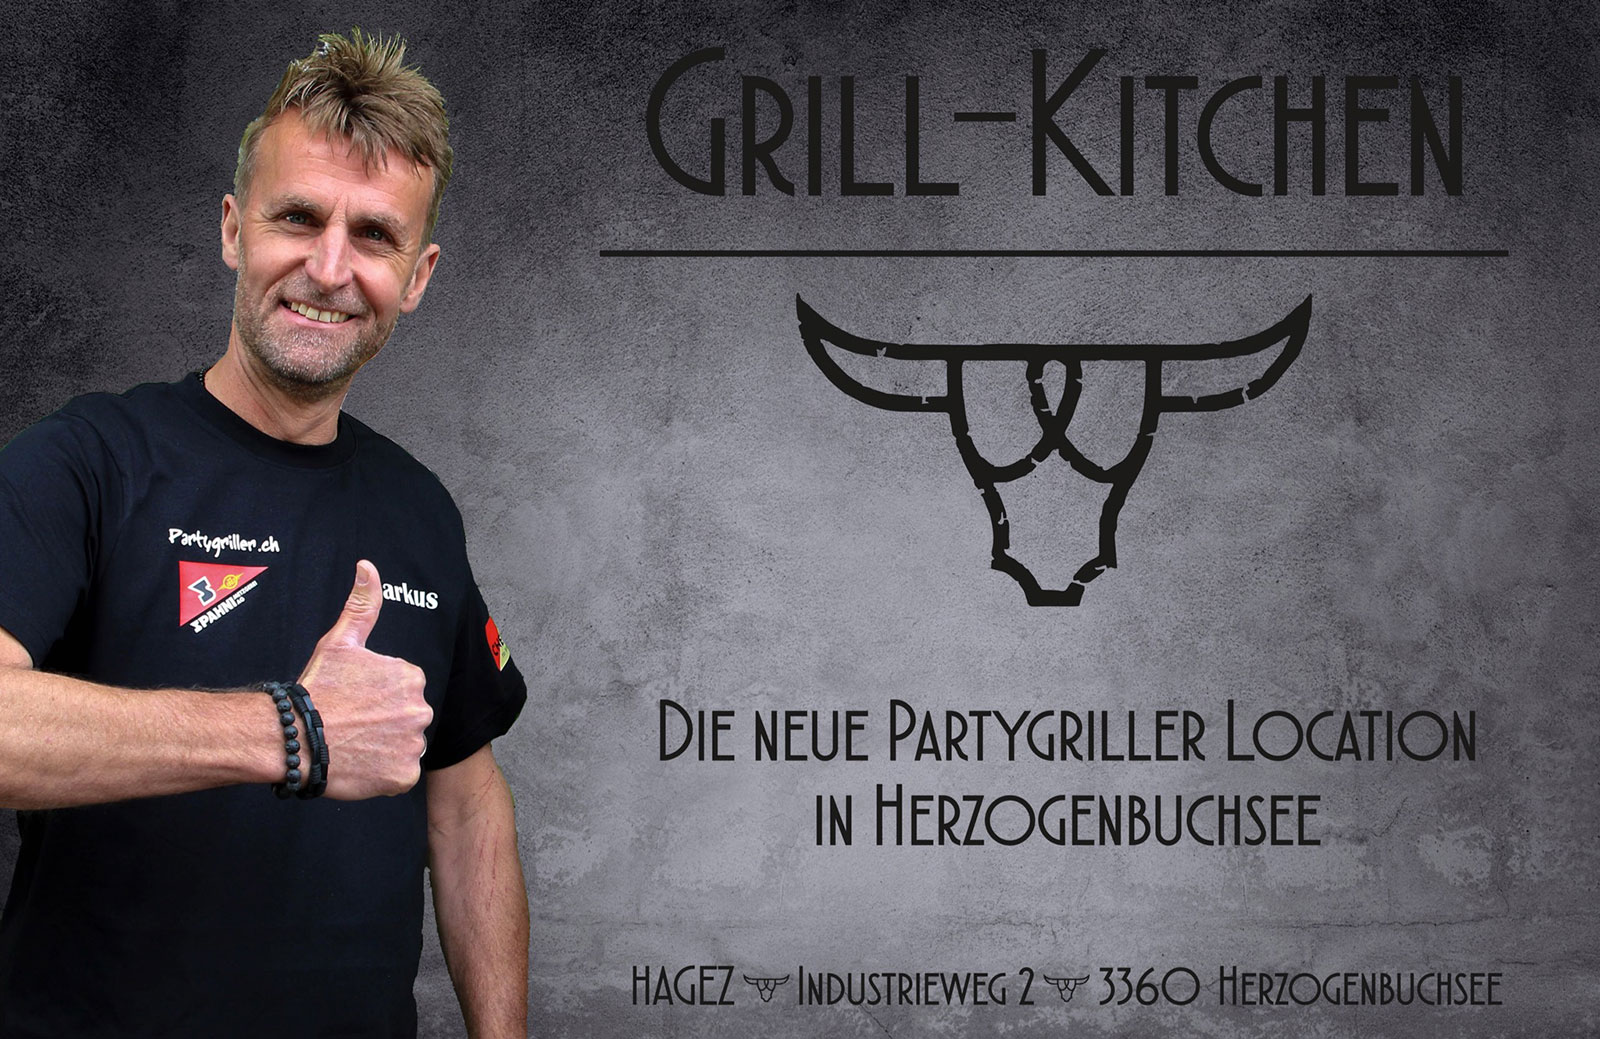 Grill-Home